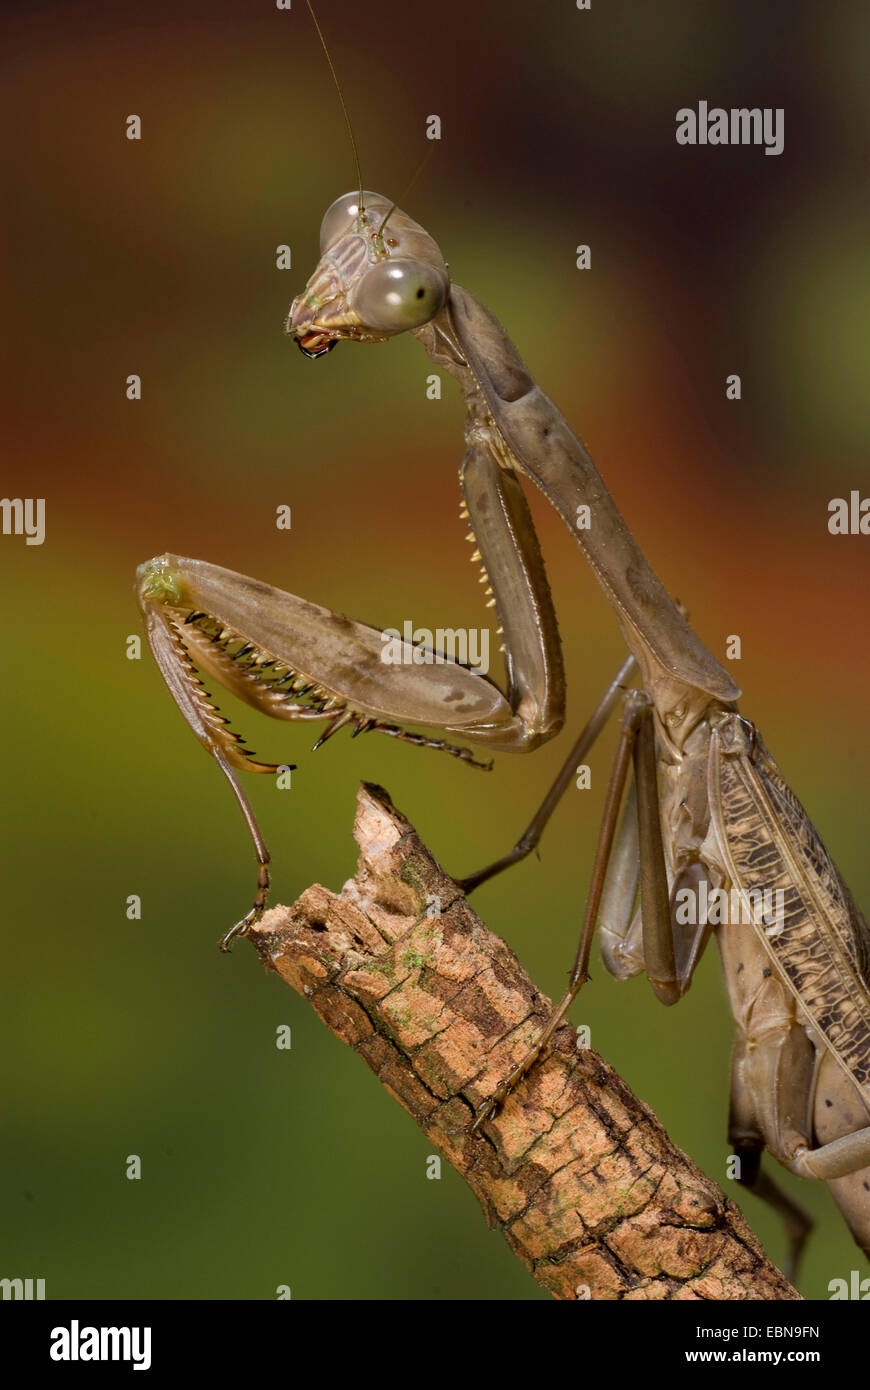 Giant Mantid (Polyspilota aeruginosa), on a branch - Stock Image